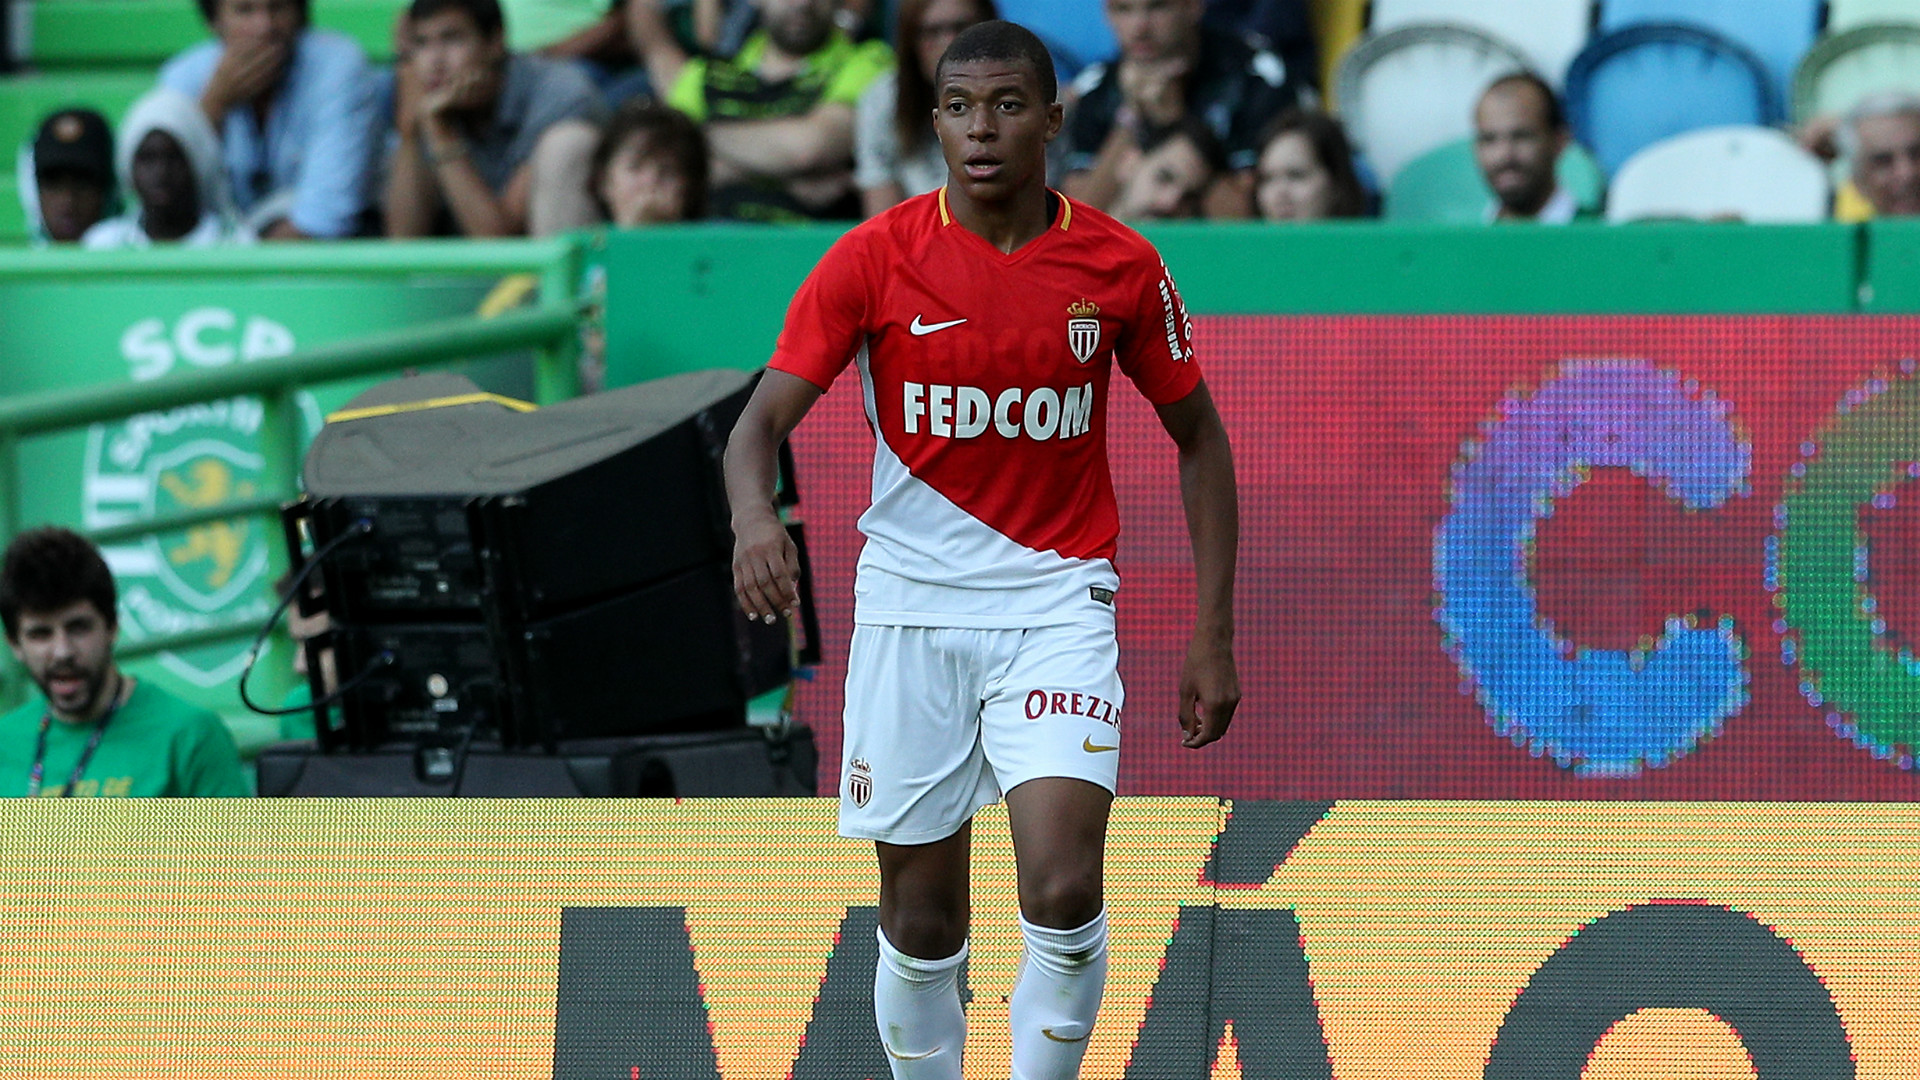 Conflicting reports on Real Madrid reaching record transfer deal for Kylian Mbappe